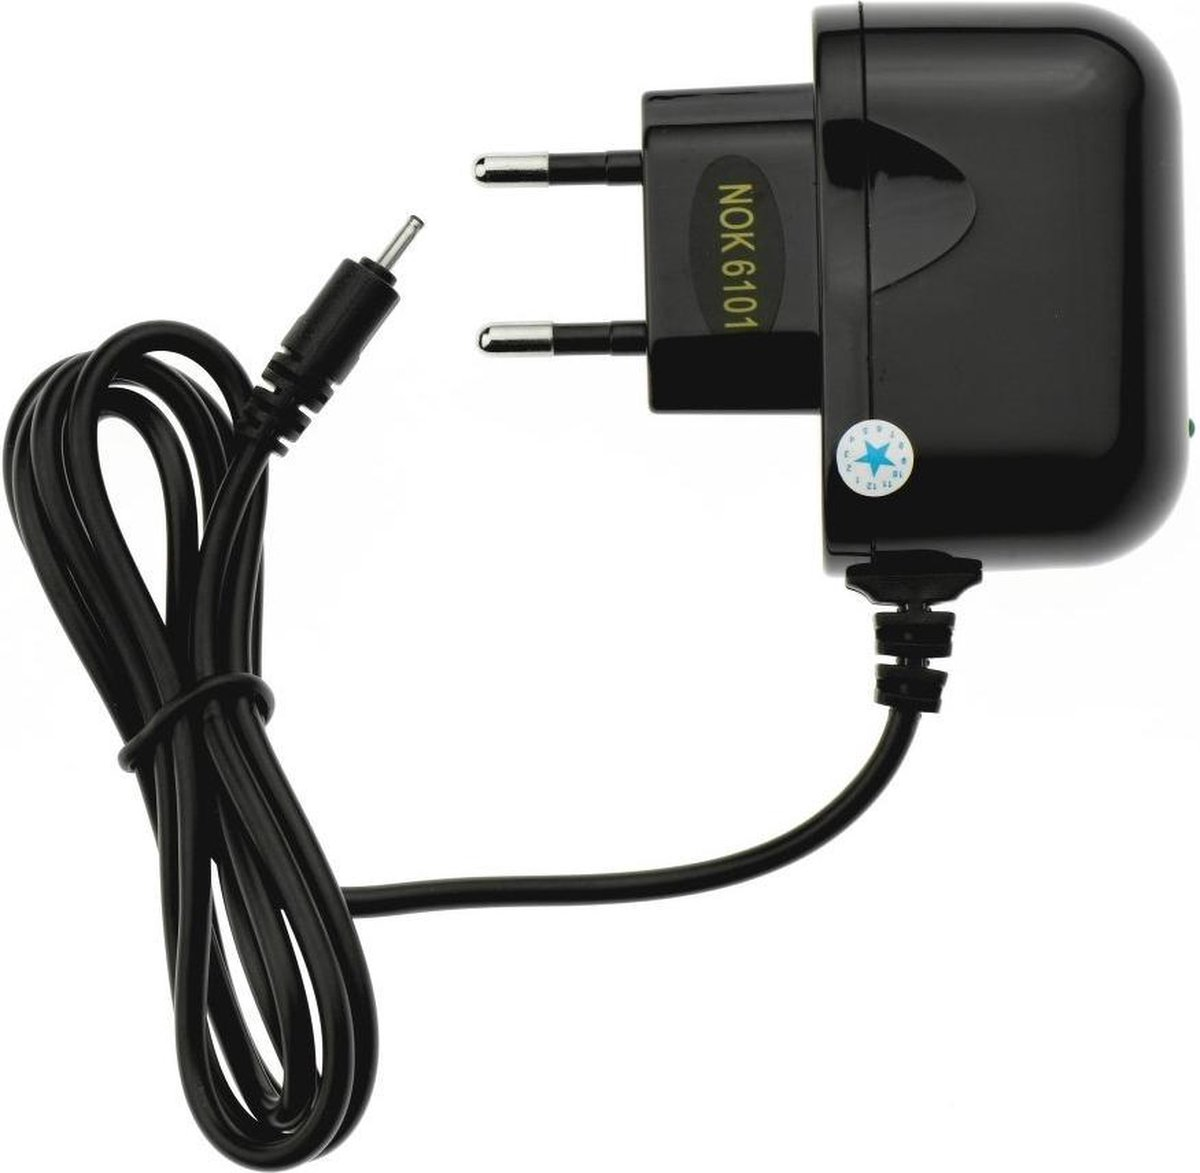 Blue Star Travel Charger NOKIA 6101/N95